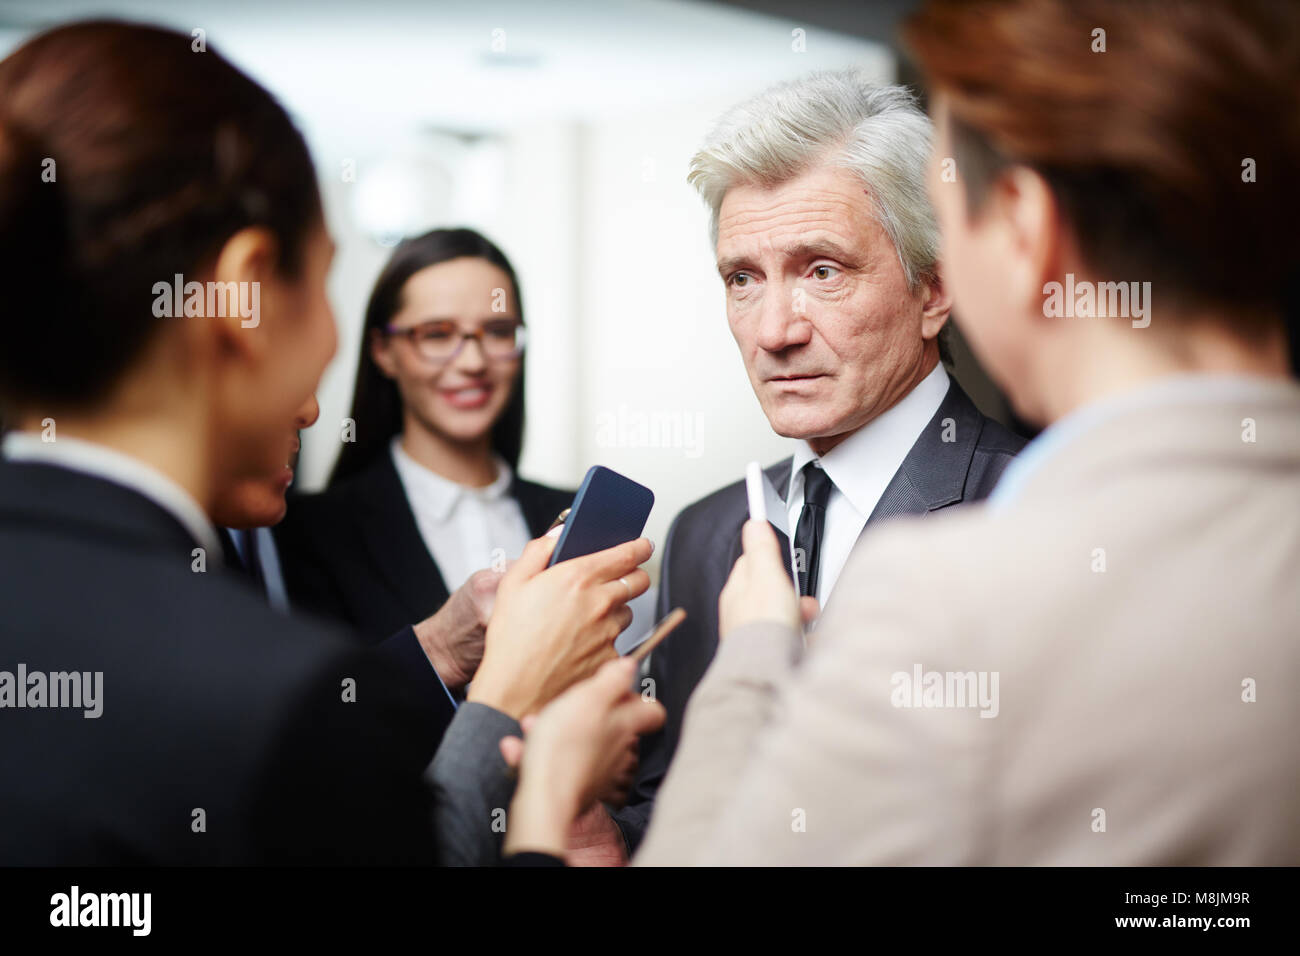 Press conference - Stock Image